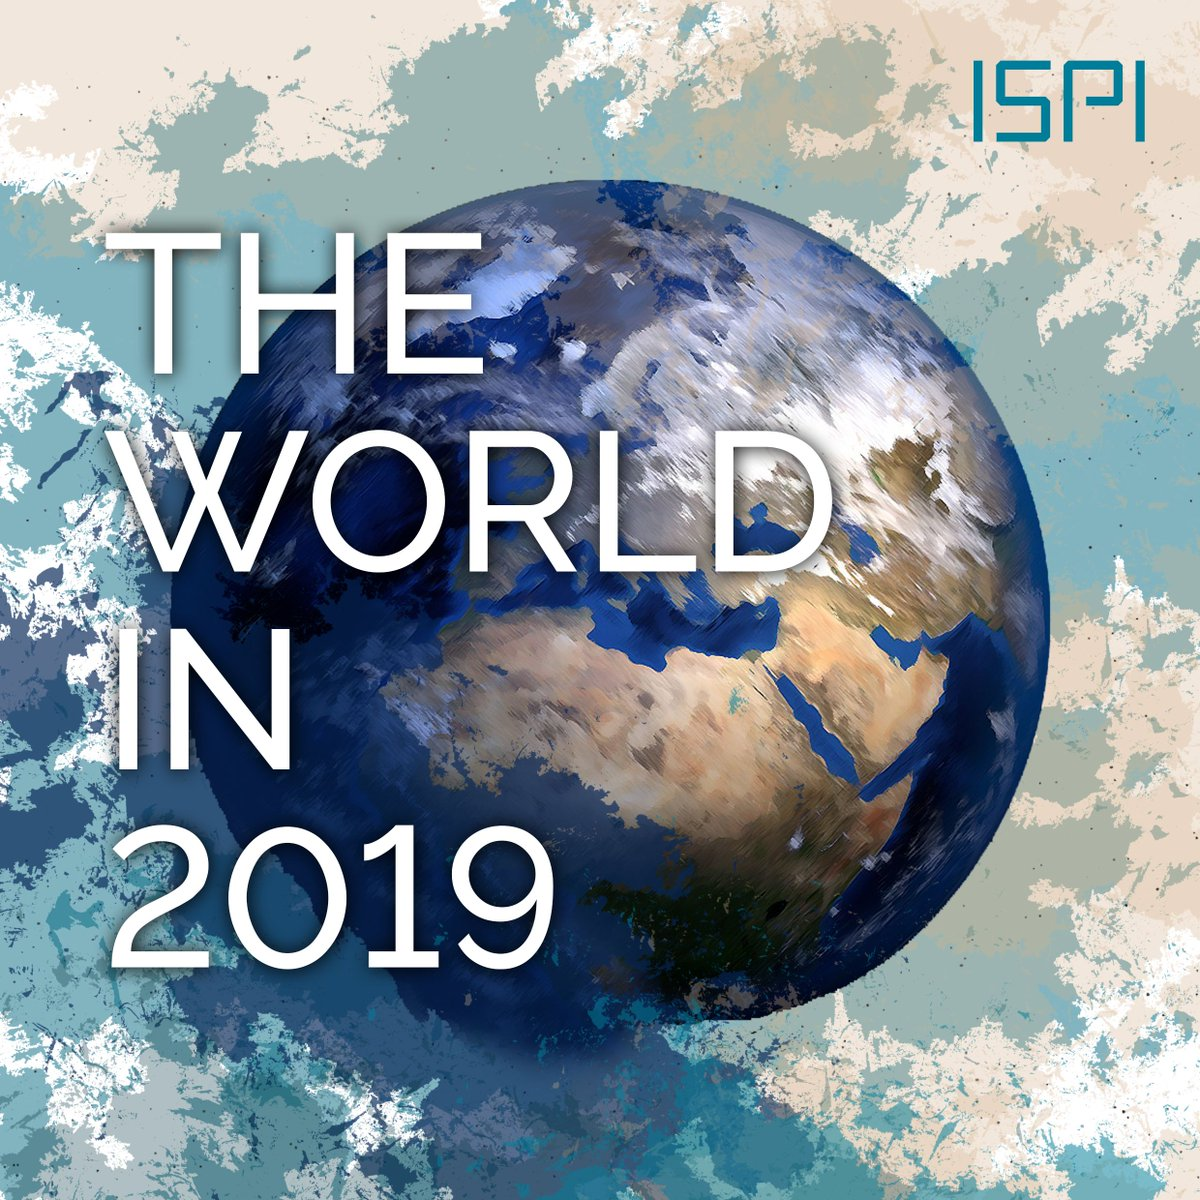 "What awaits the world in #2019? → https://t.co/MZtxWEAza5  ISPI has asked top international experts and thought leaders to explore the key global trends and challenges that will shape international politics: 10 questions and 10 focuses on issues ""to watch""."